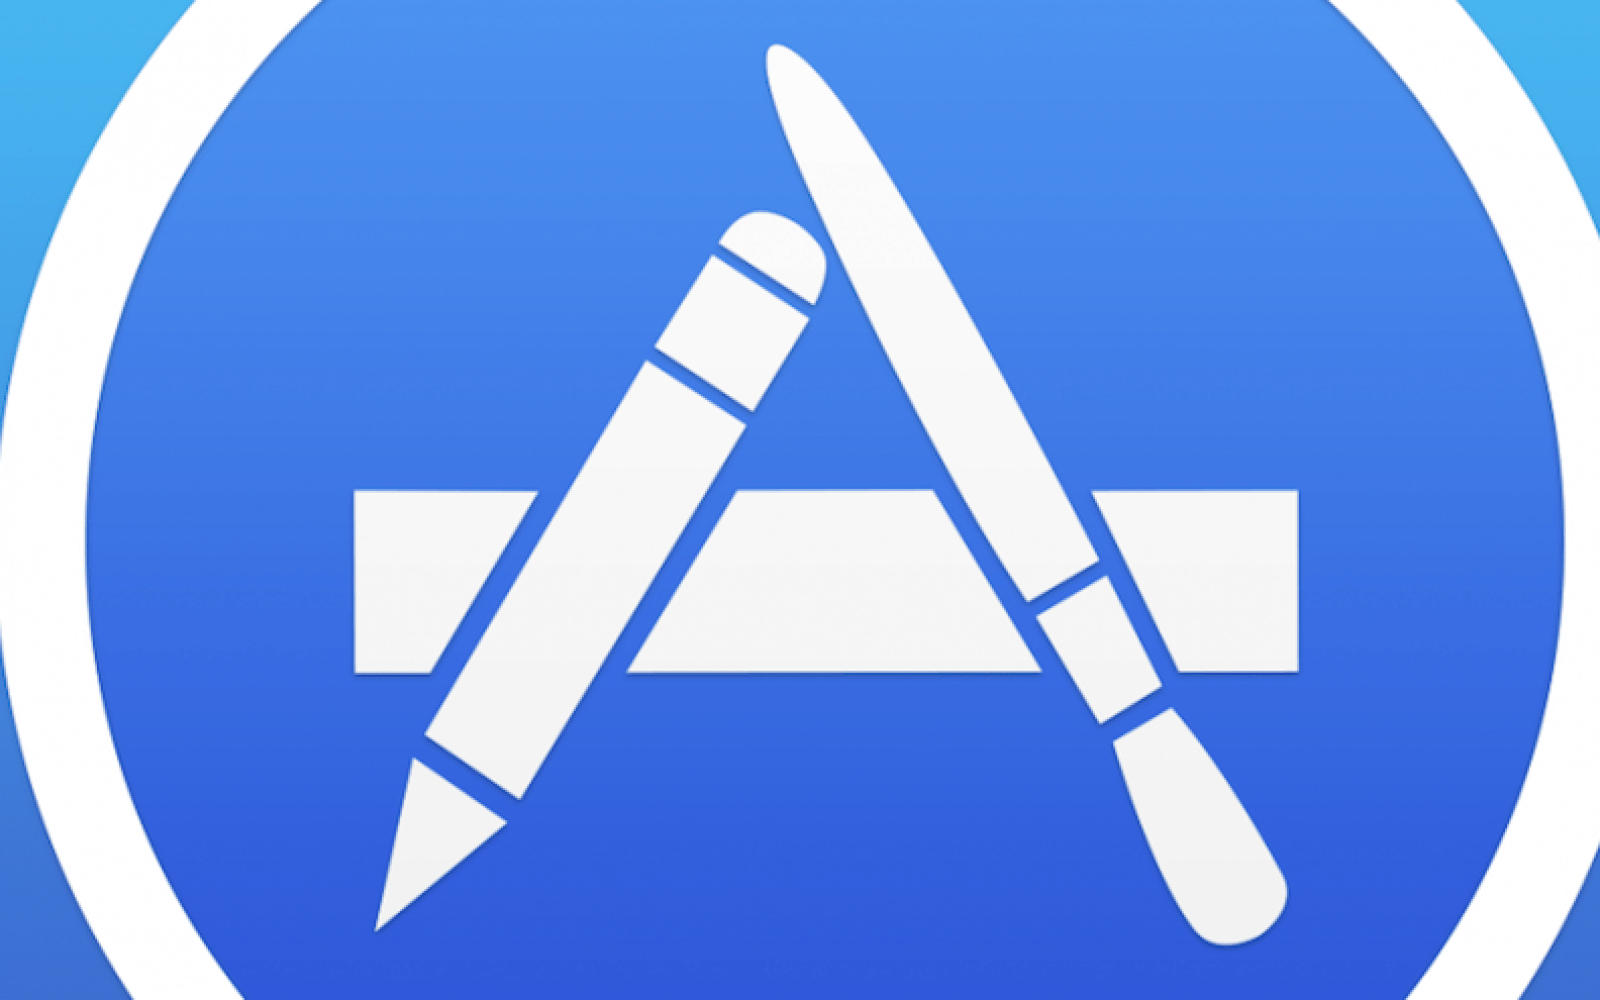 Apple updates App Store search algorithms to display more relevant & intelligent results